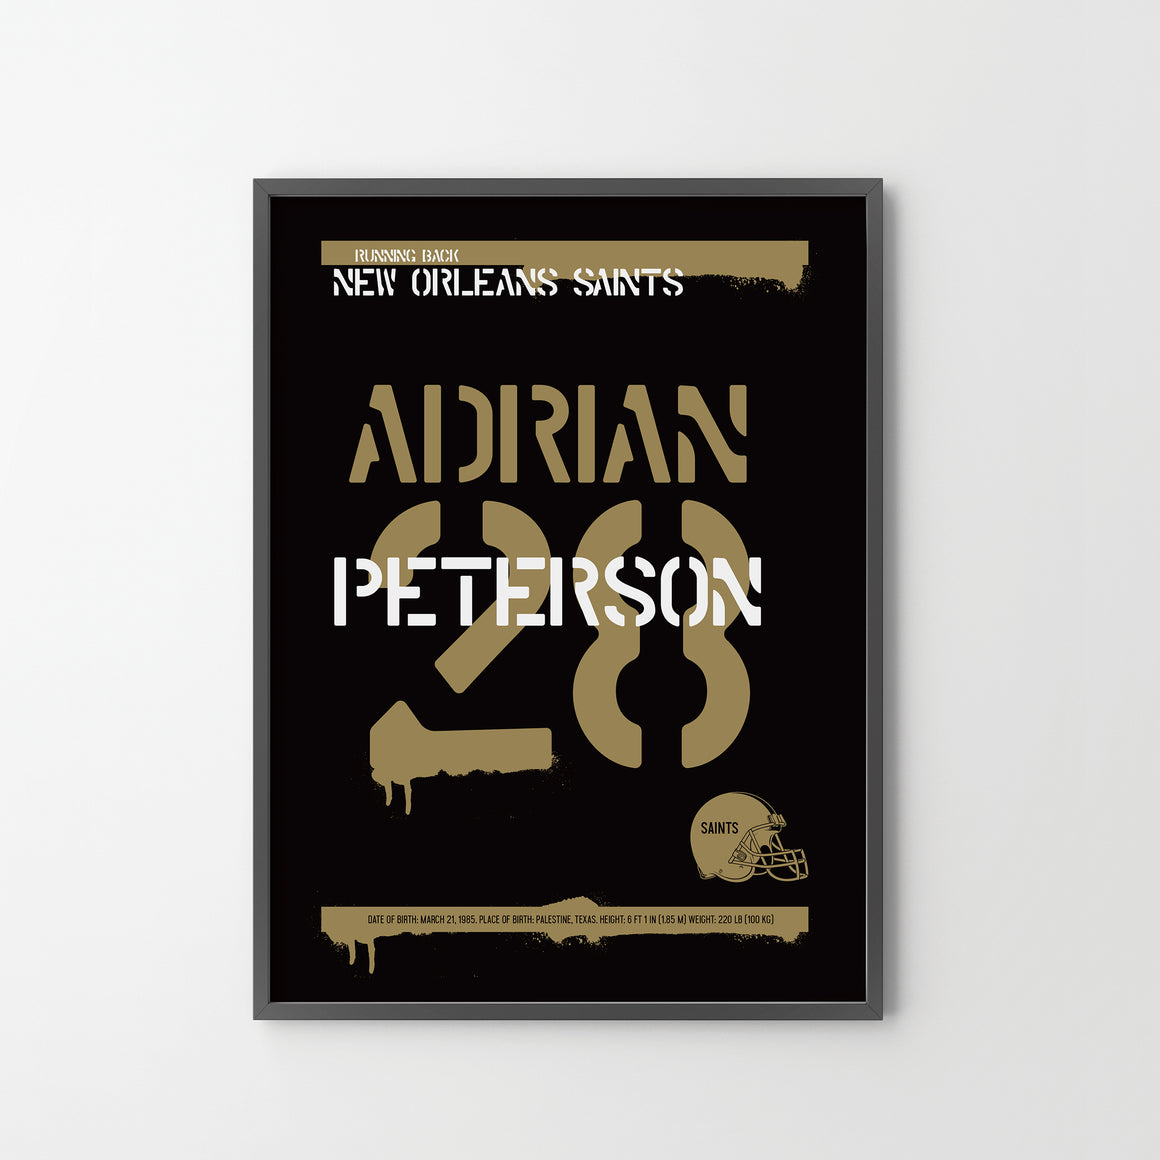 ADRIAN PETERSON New Orlean Saints American Football NFL Poster Art Print, Sport Posters - SOA State of Art